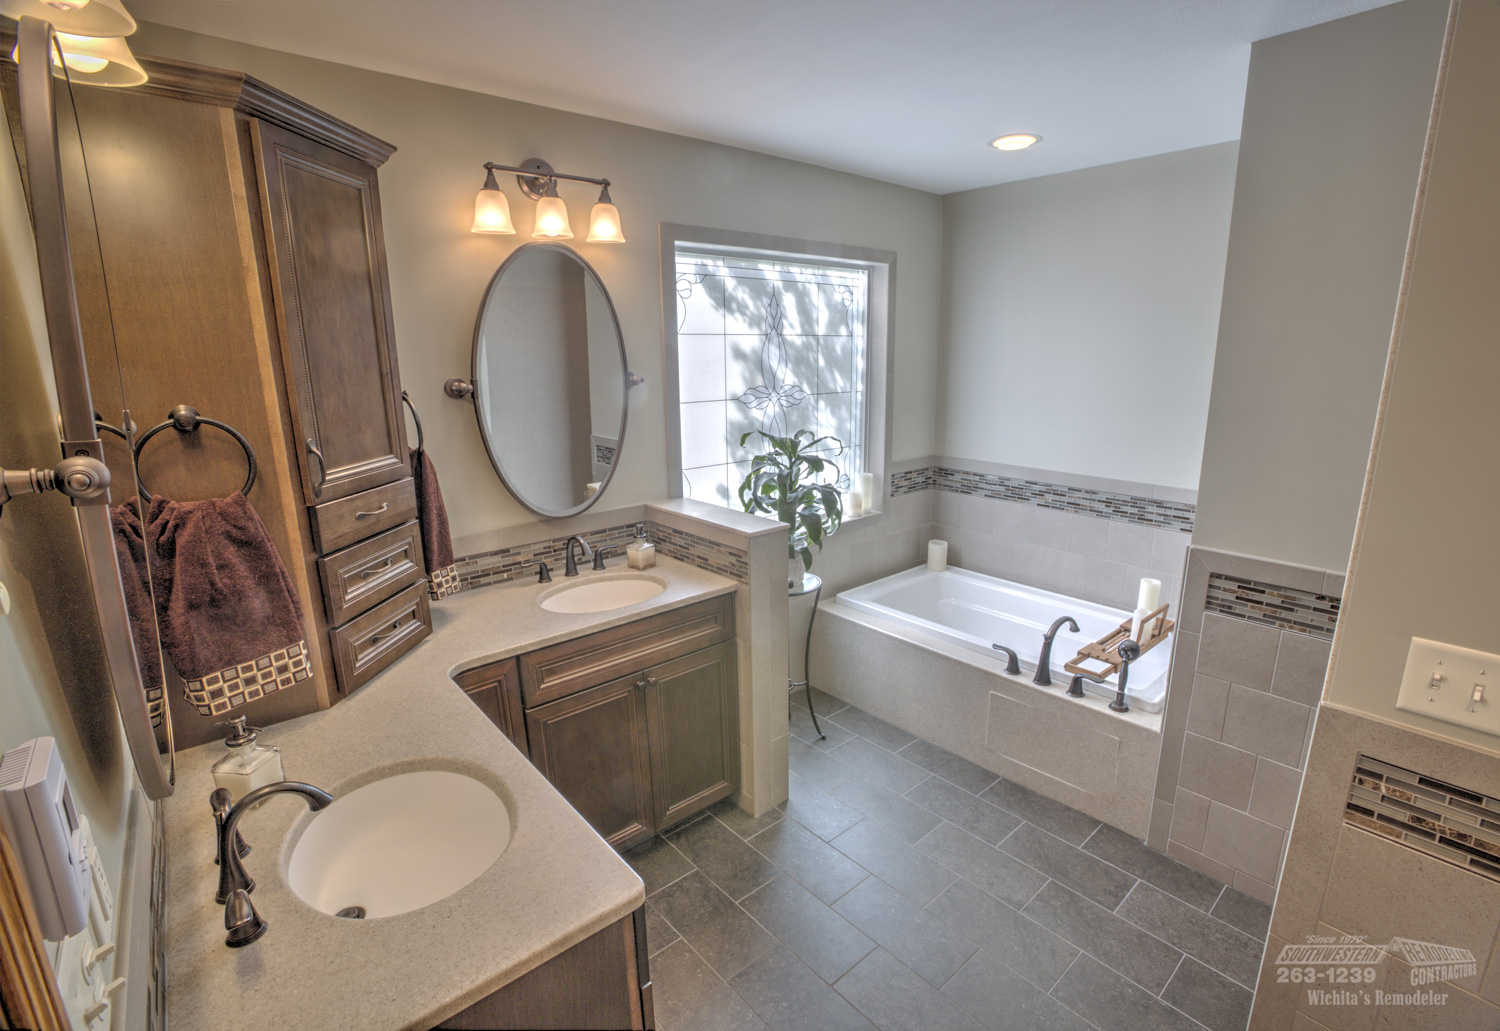 Bathroom remodeling southwestern remodeling wichita for Home bathroom remodel